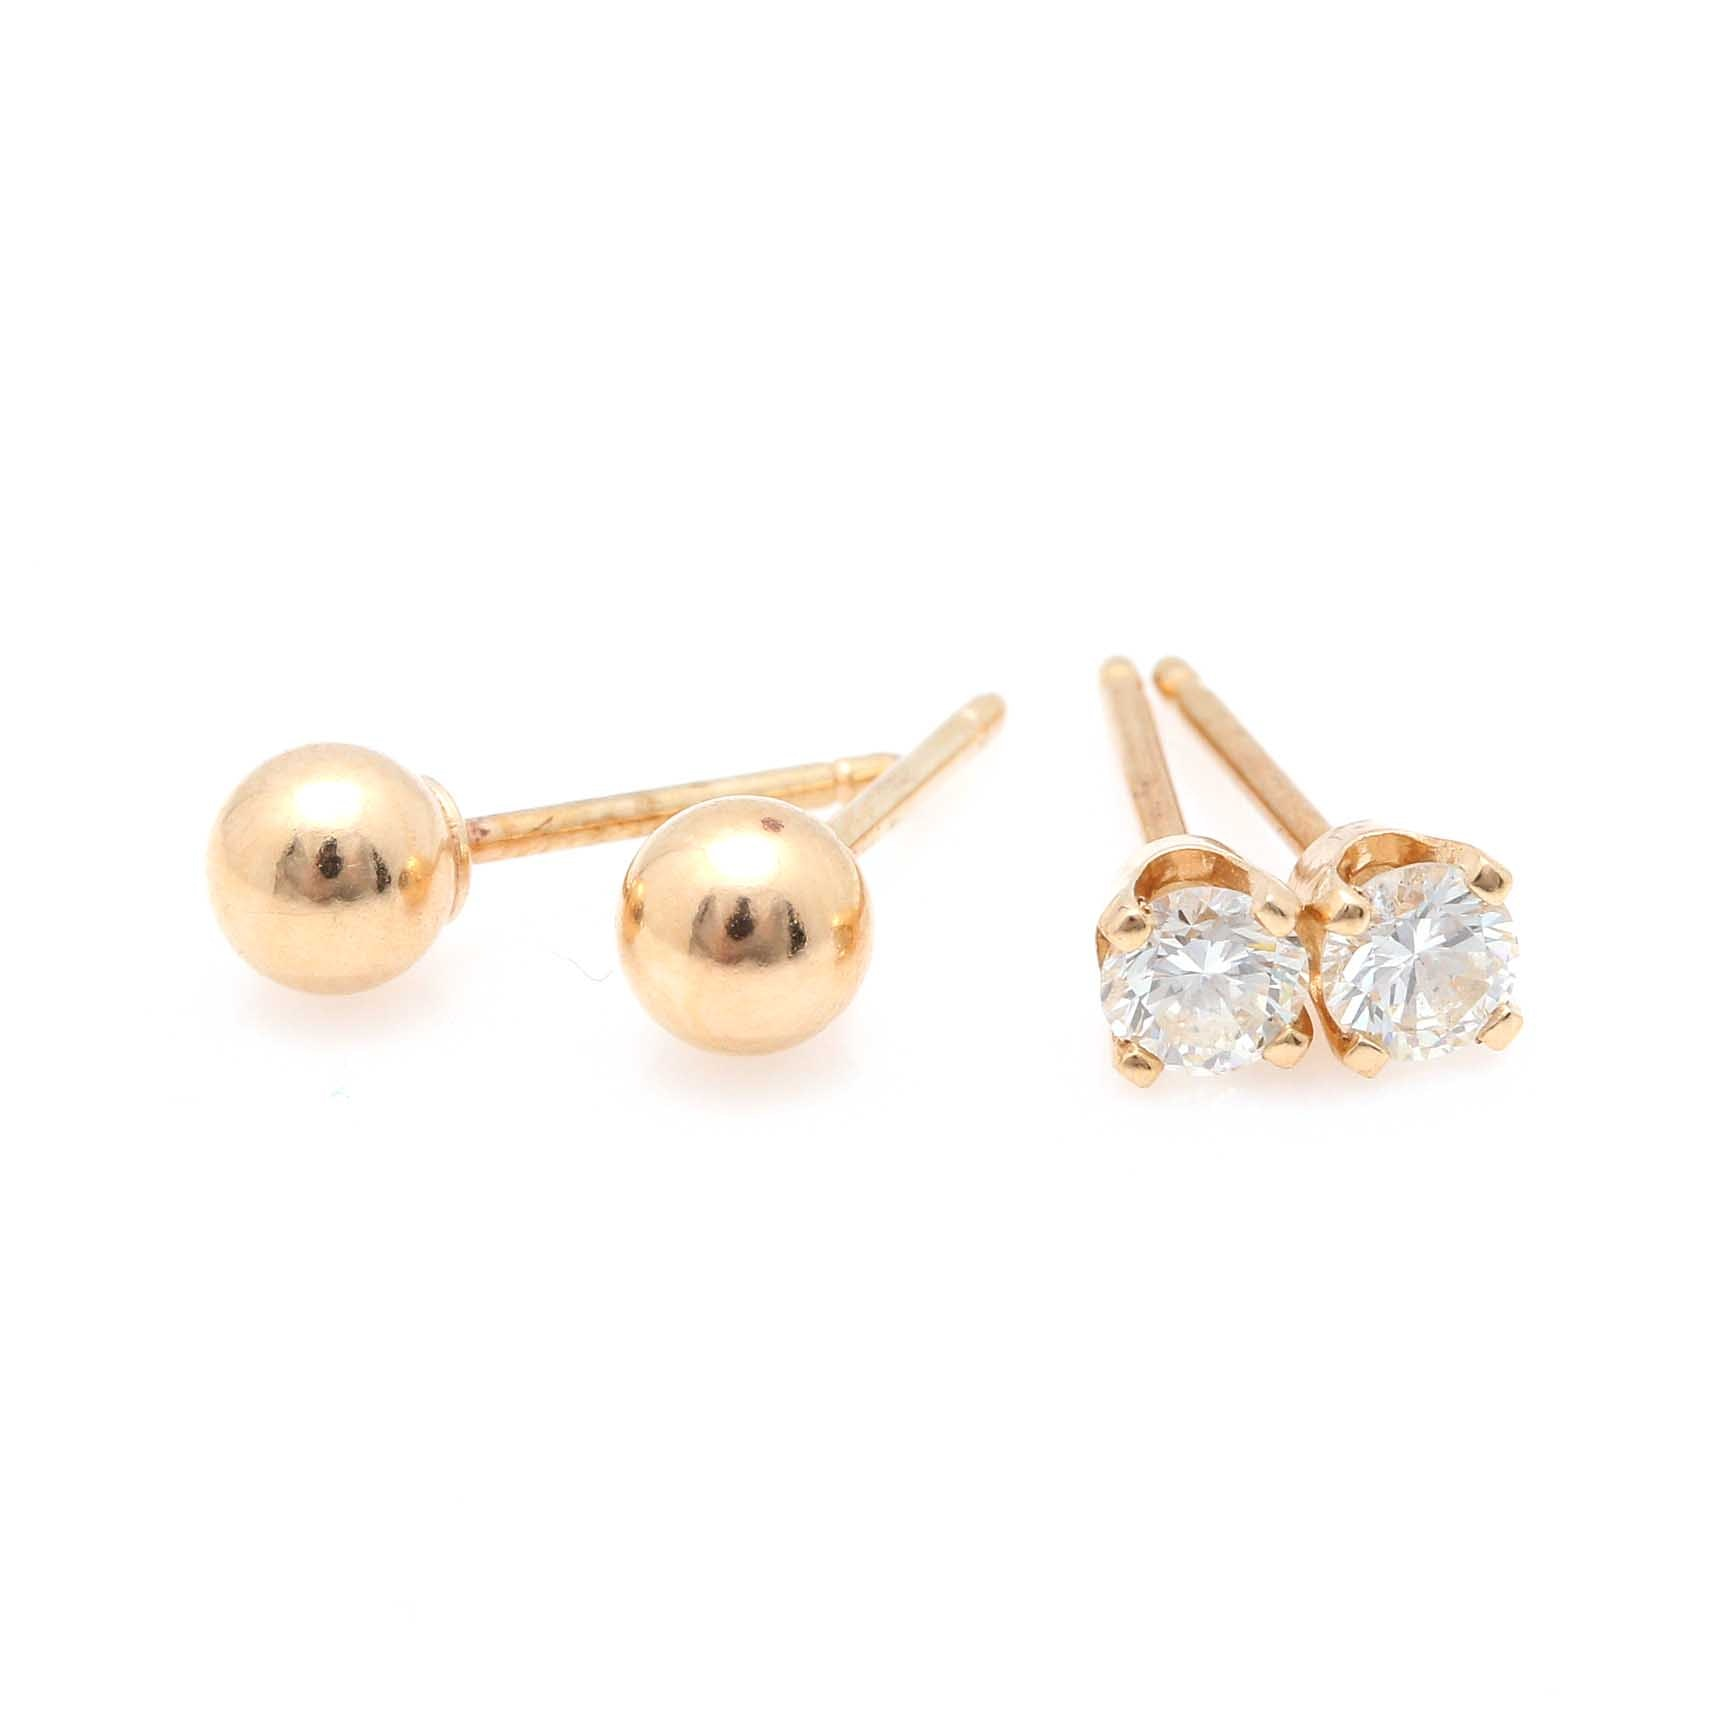 Two Pairs of 14K Yellow Gold Stud Earrings Including Diamonds